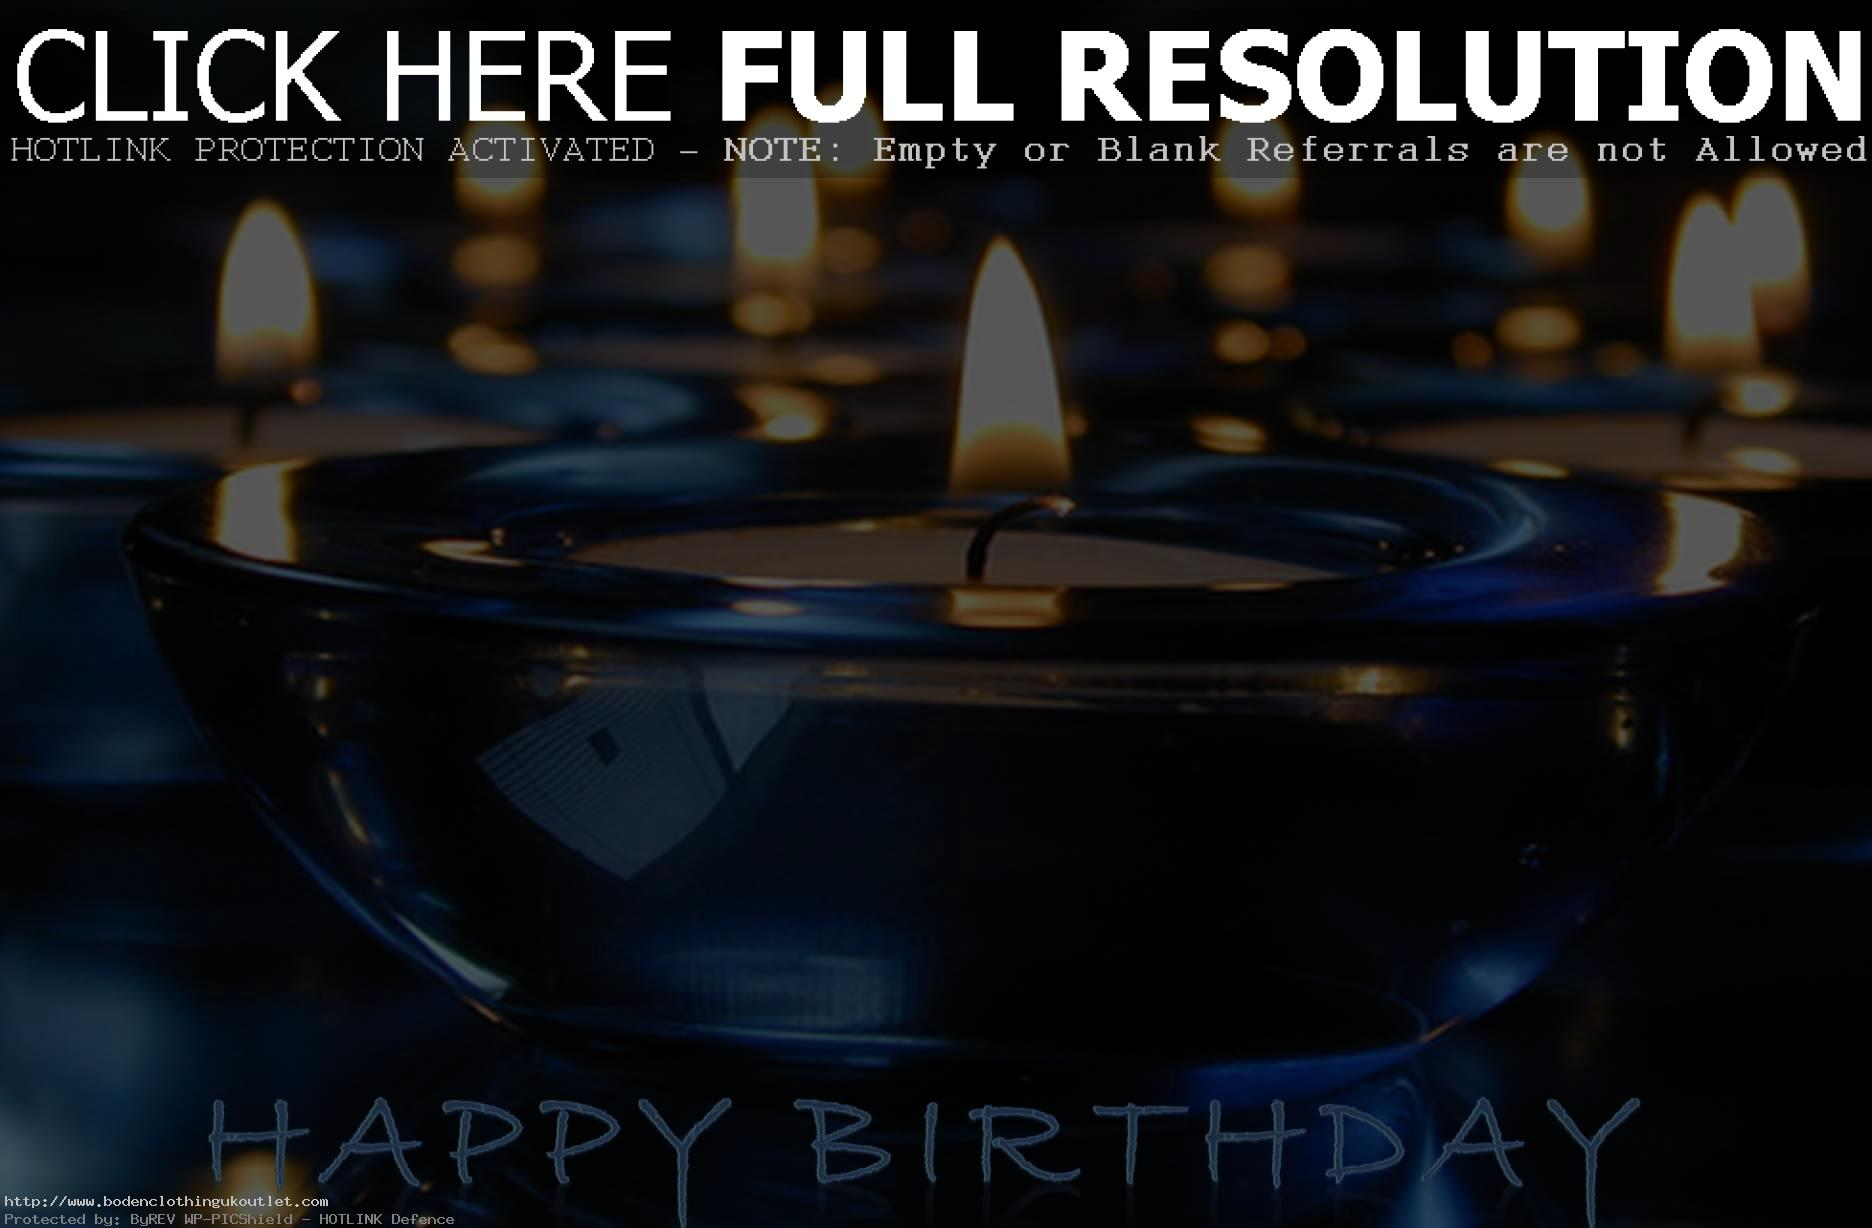 birthday wishes images hd free download ; Happy-Birthday-HD-Images-3